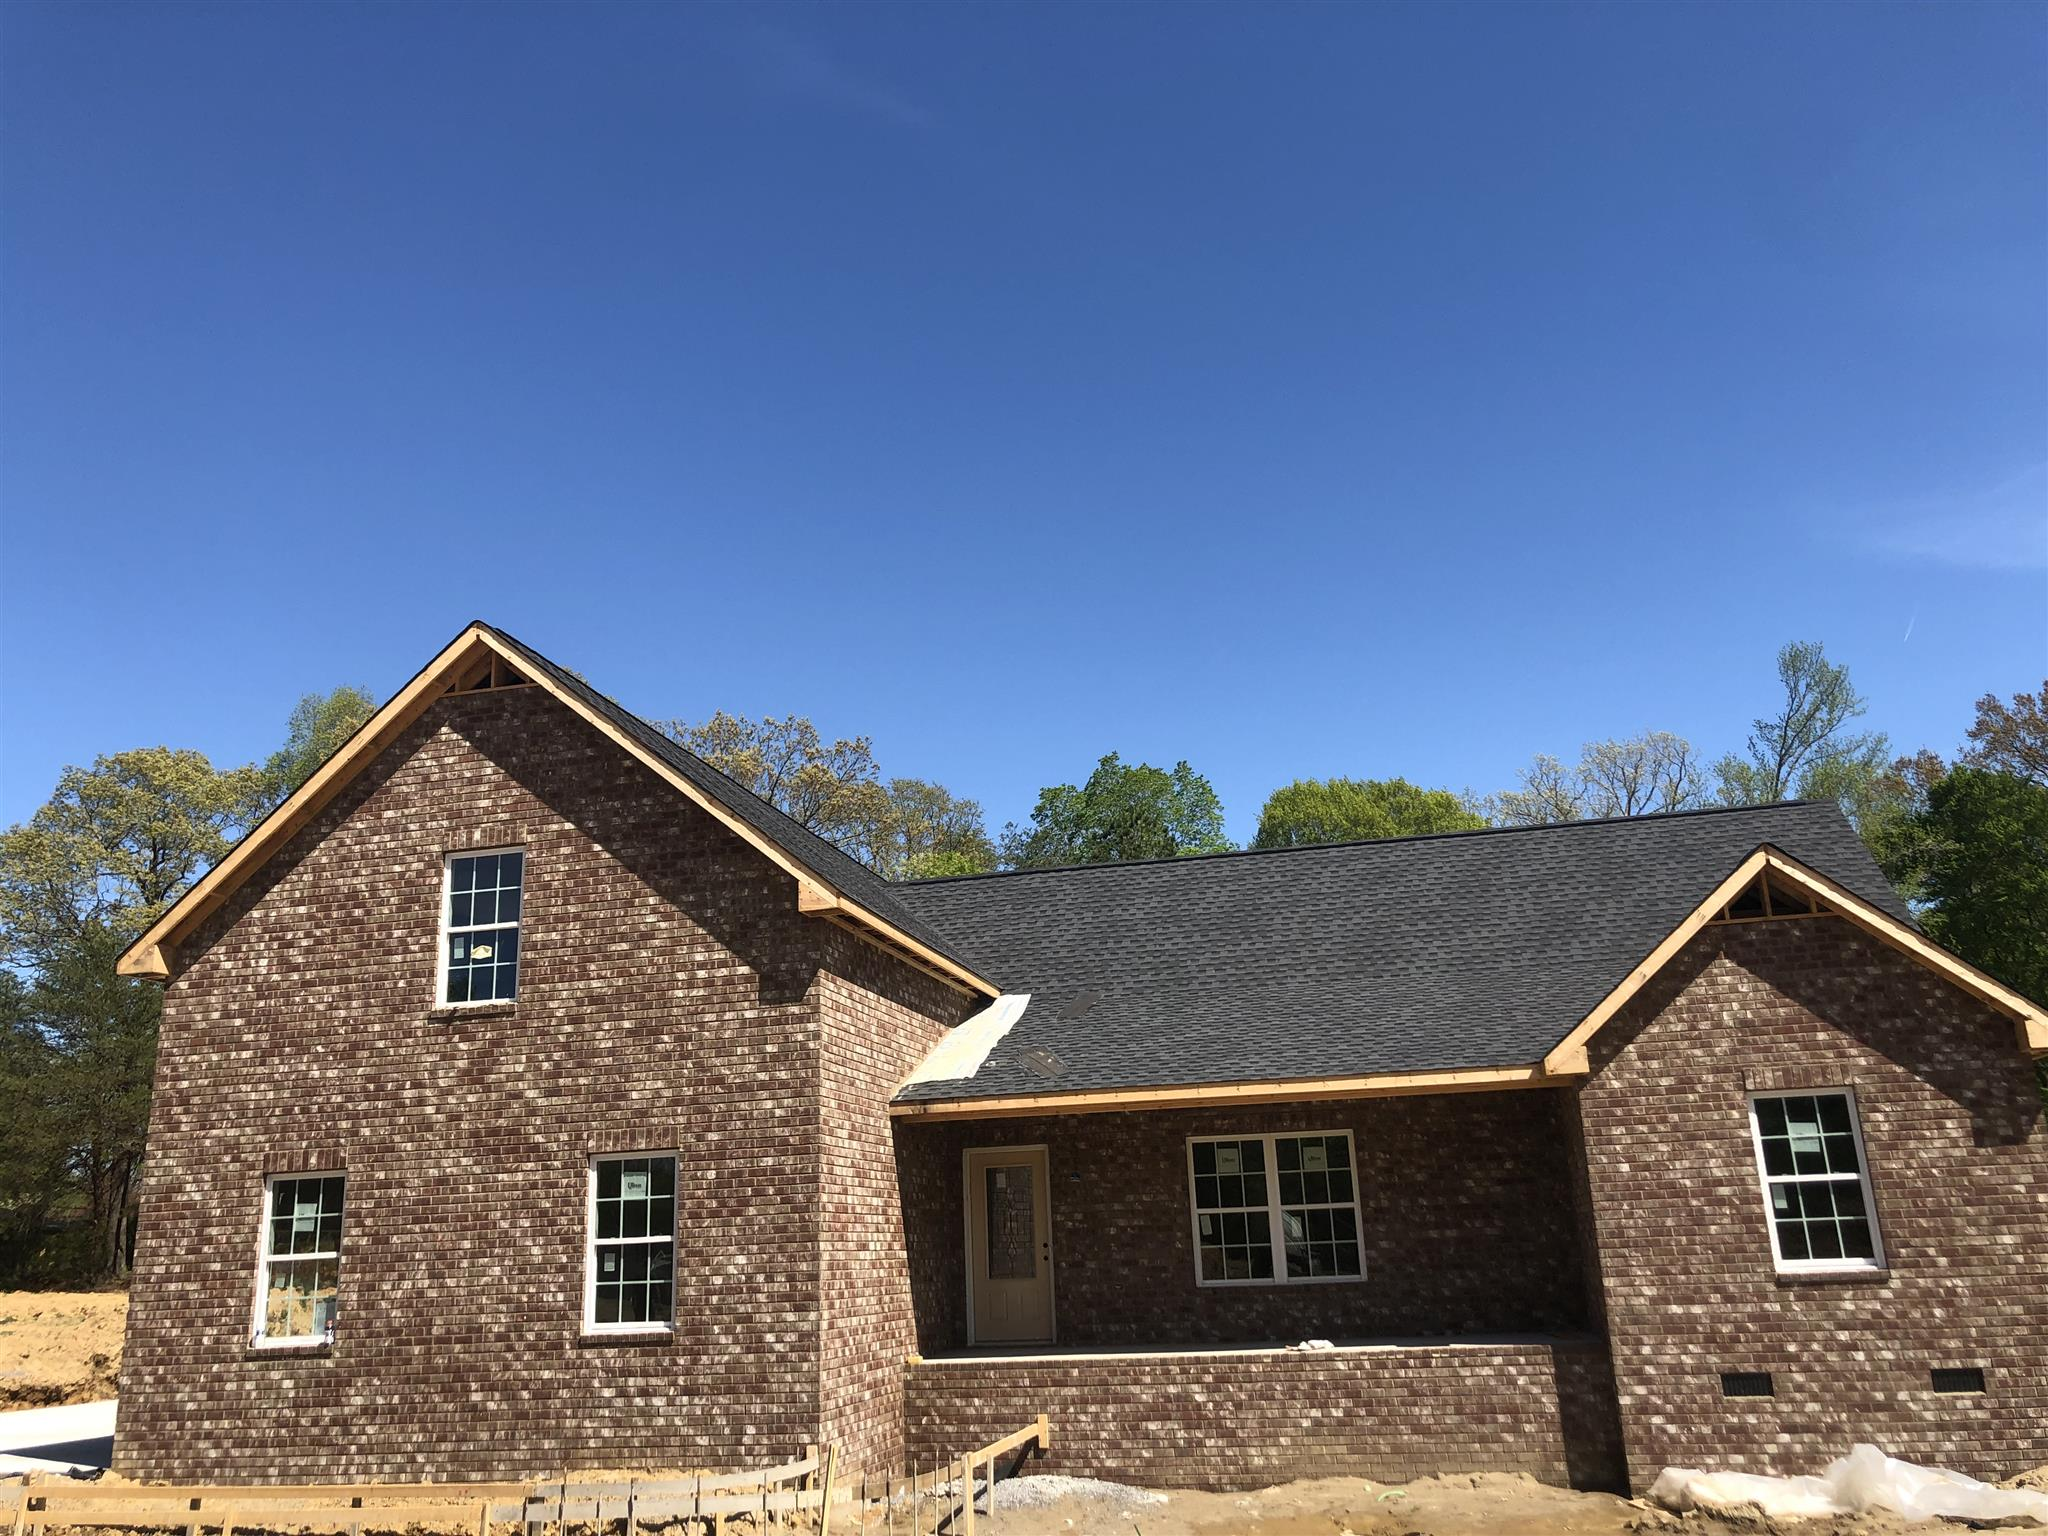 1540 Old Hwy 49, Ashland City, TN 37015 - Ashland City, TN real estate listing